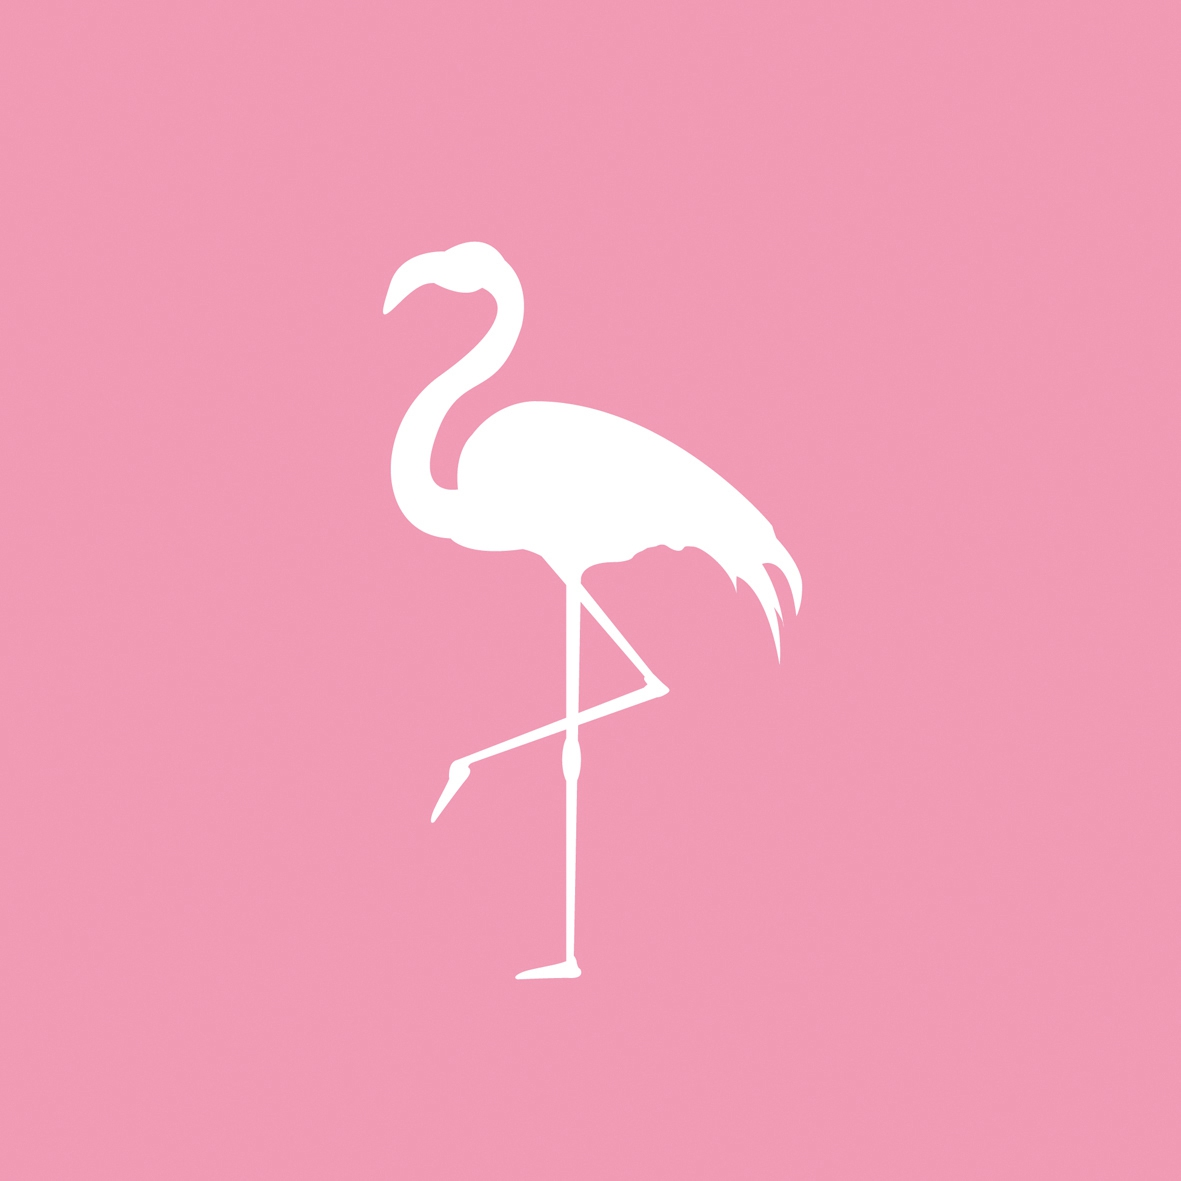 Lunch Servietten Pink Flamingo,  Tiere - Vögel,  Everyday,  lunchservietten,  Flamingo